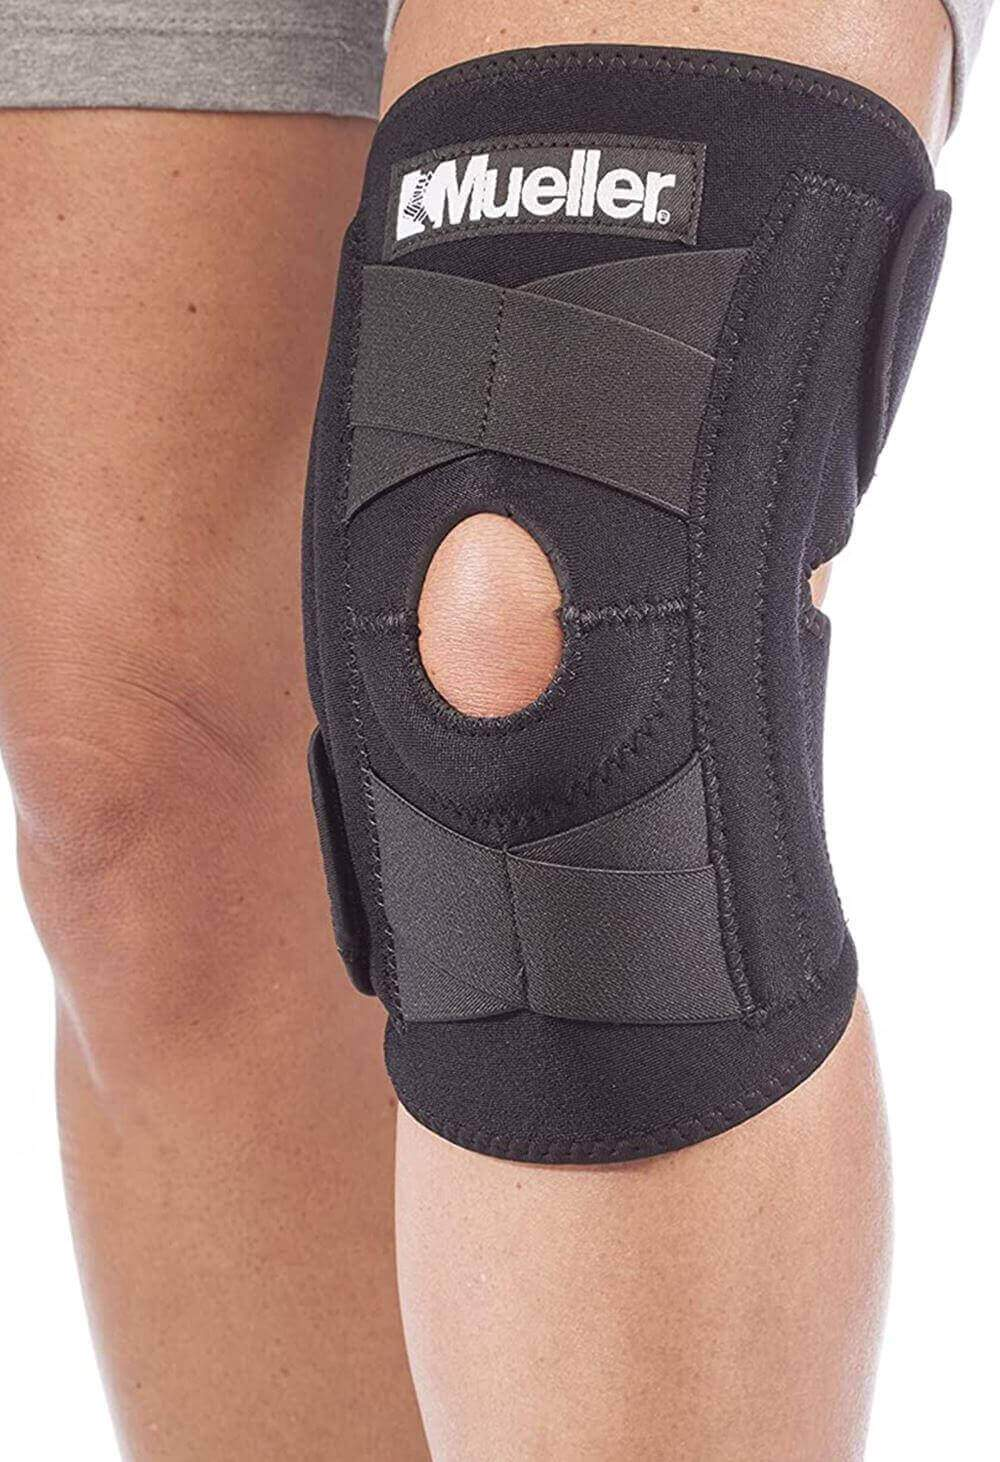 mueller self adjusting knee stabilizer